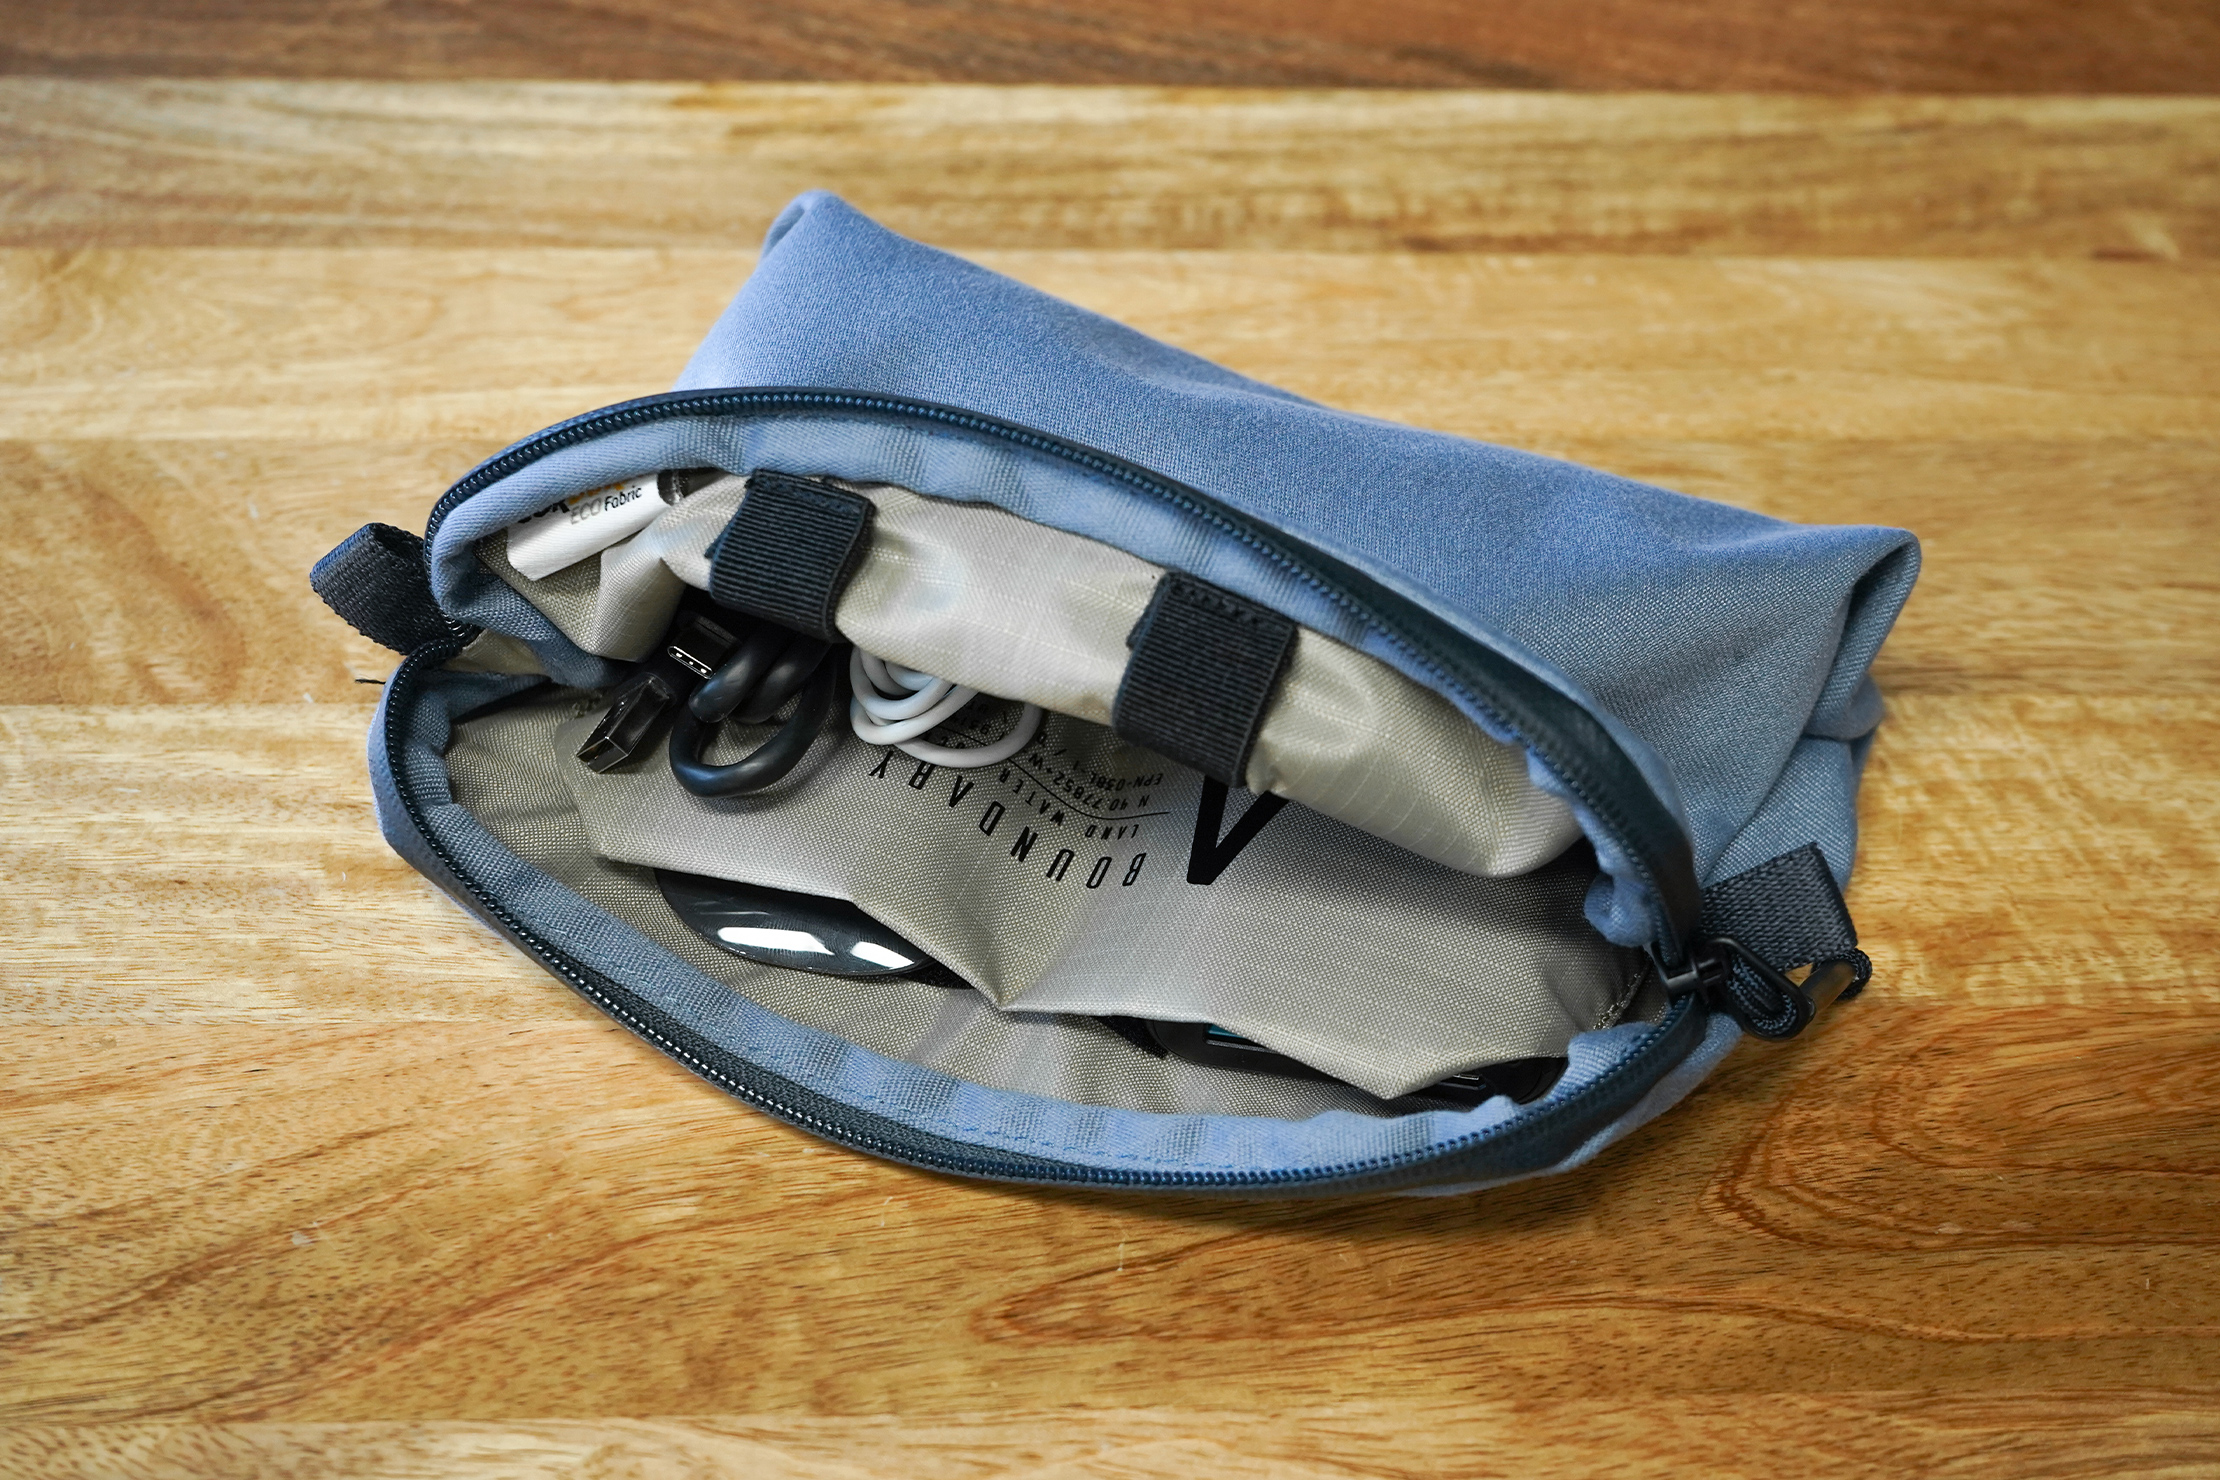 Boundary Supply Rennen Recycled Pouch | Using the pouch at work